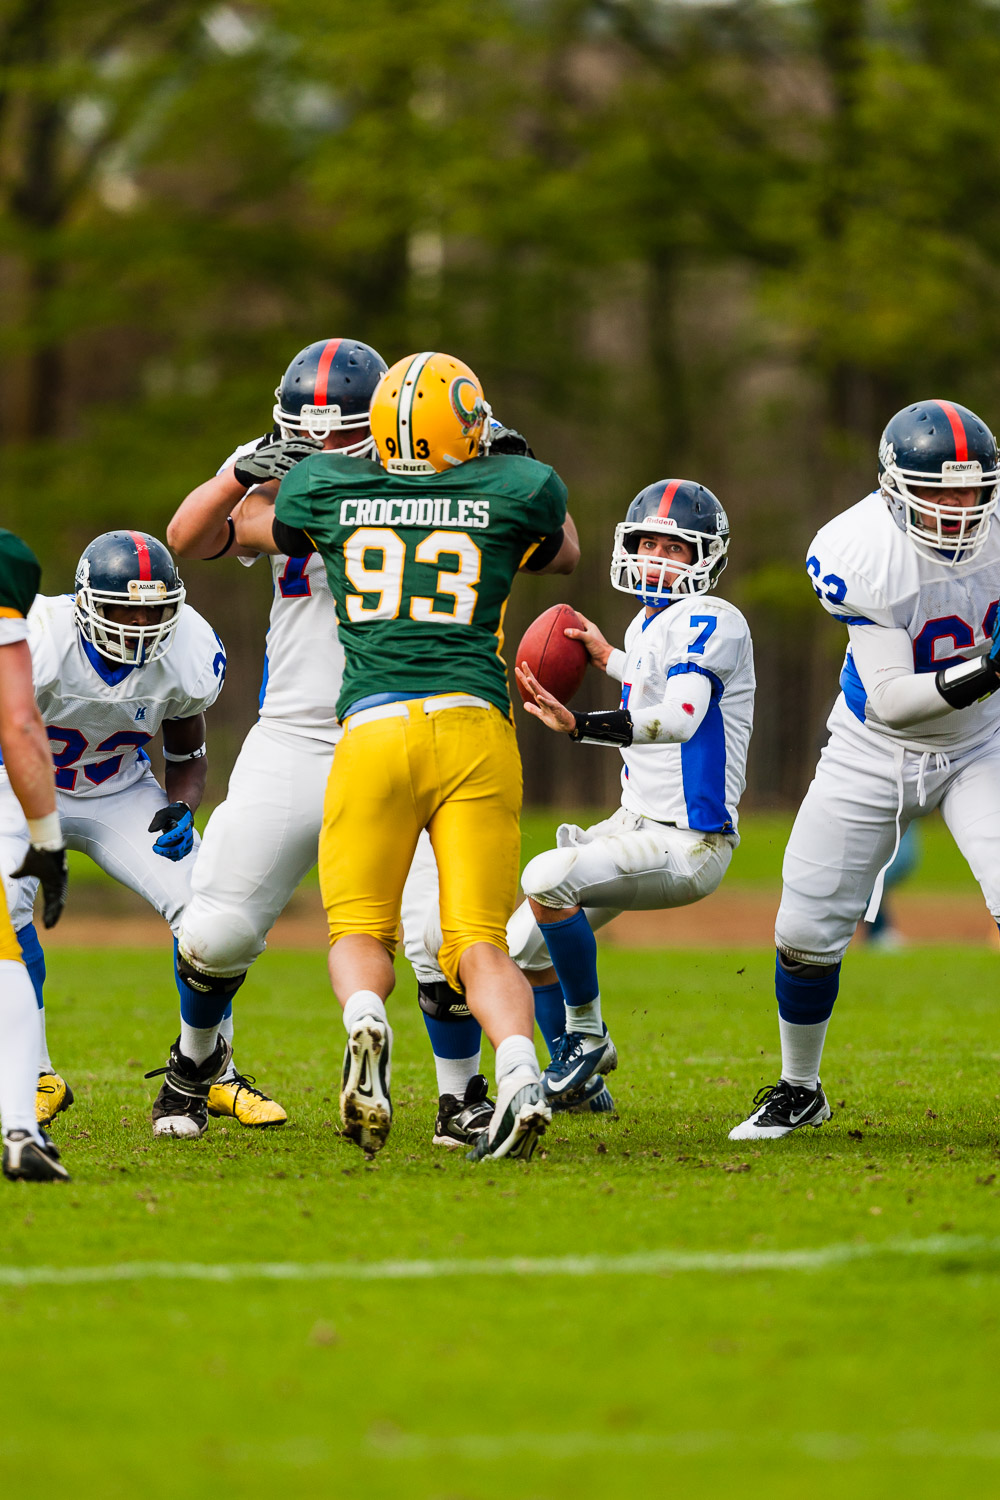 GFLJ 2013 - Dortmund Giants U19 vs. Cologne Crocodiles U19